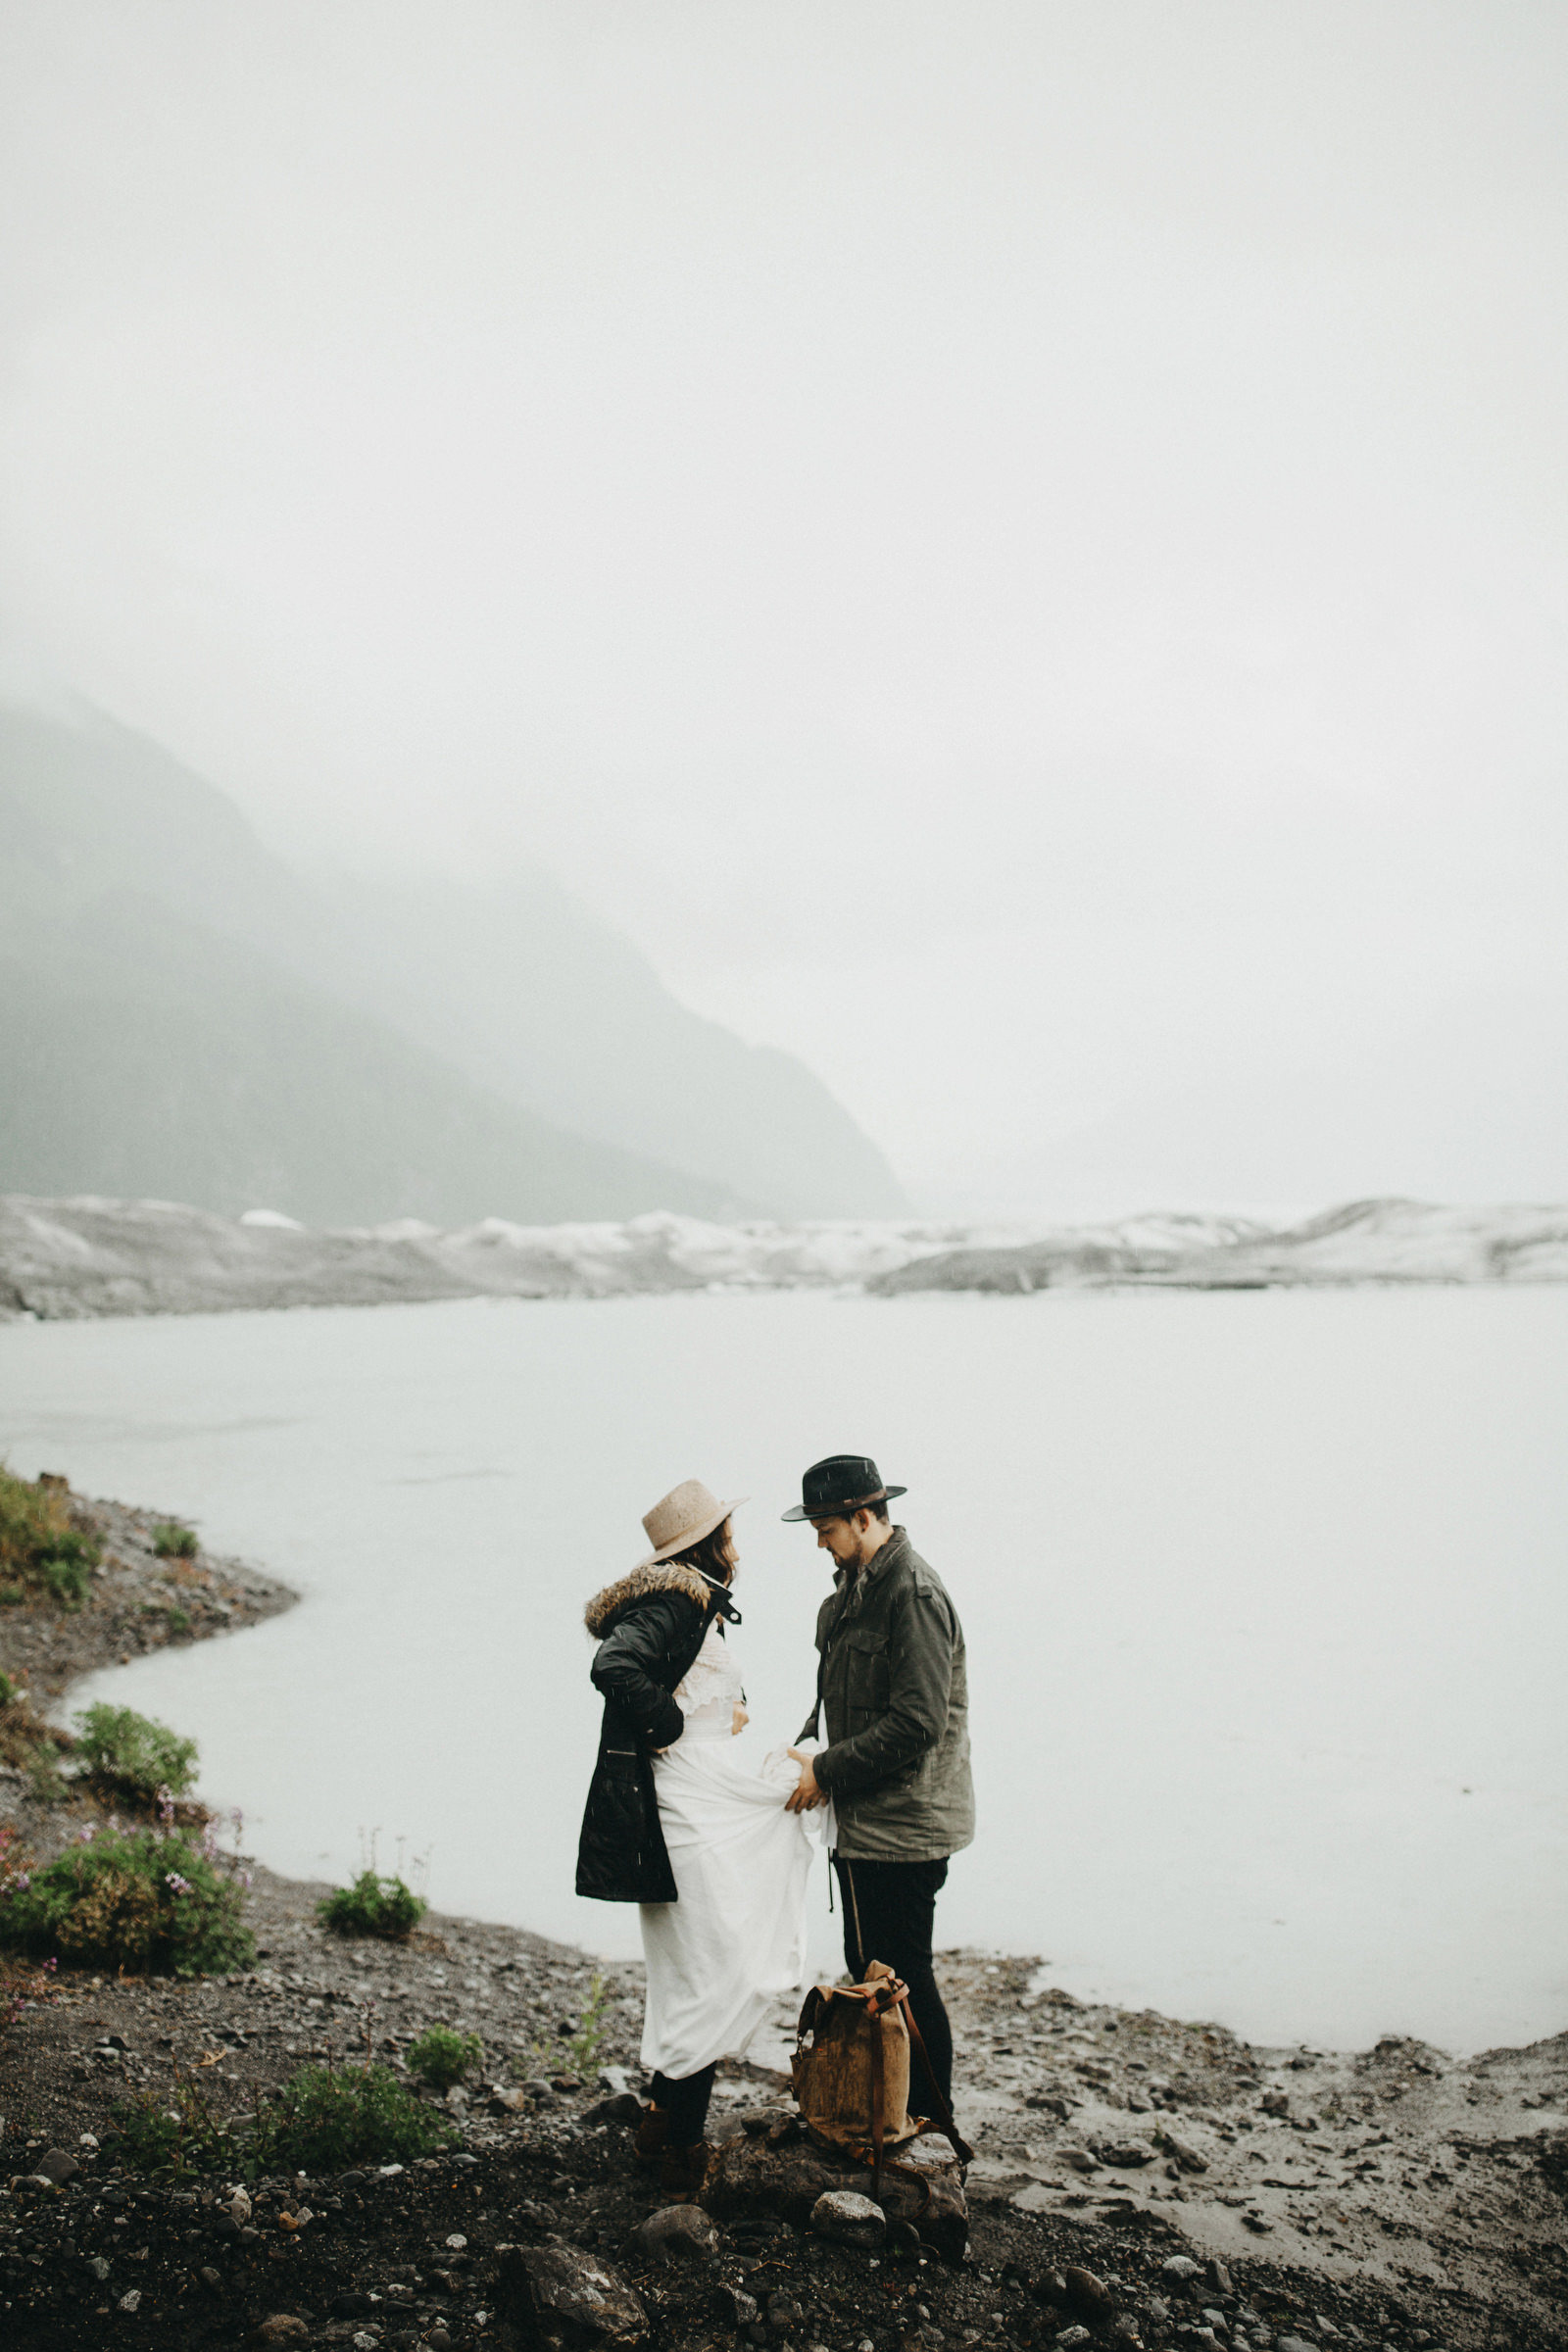 athena-and-camron-alaska-elopement-wedding-inspiration-india-earl-athena-grace-glacier-lagoon-wedding71